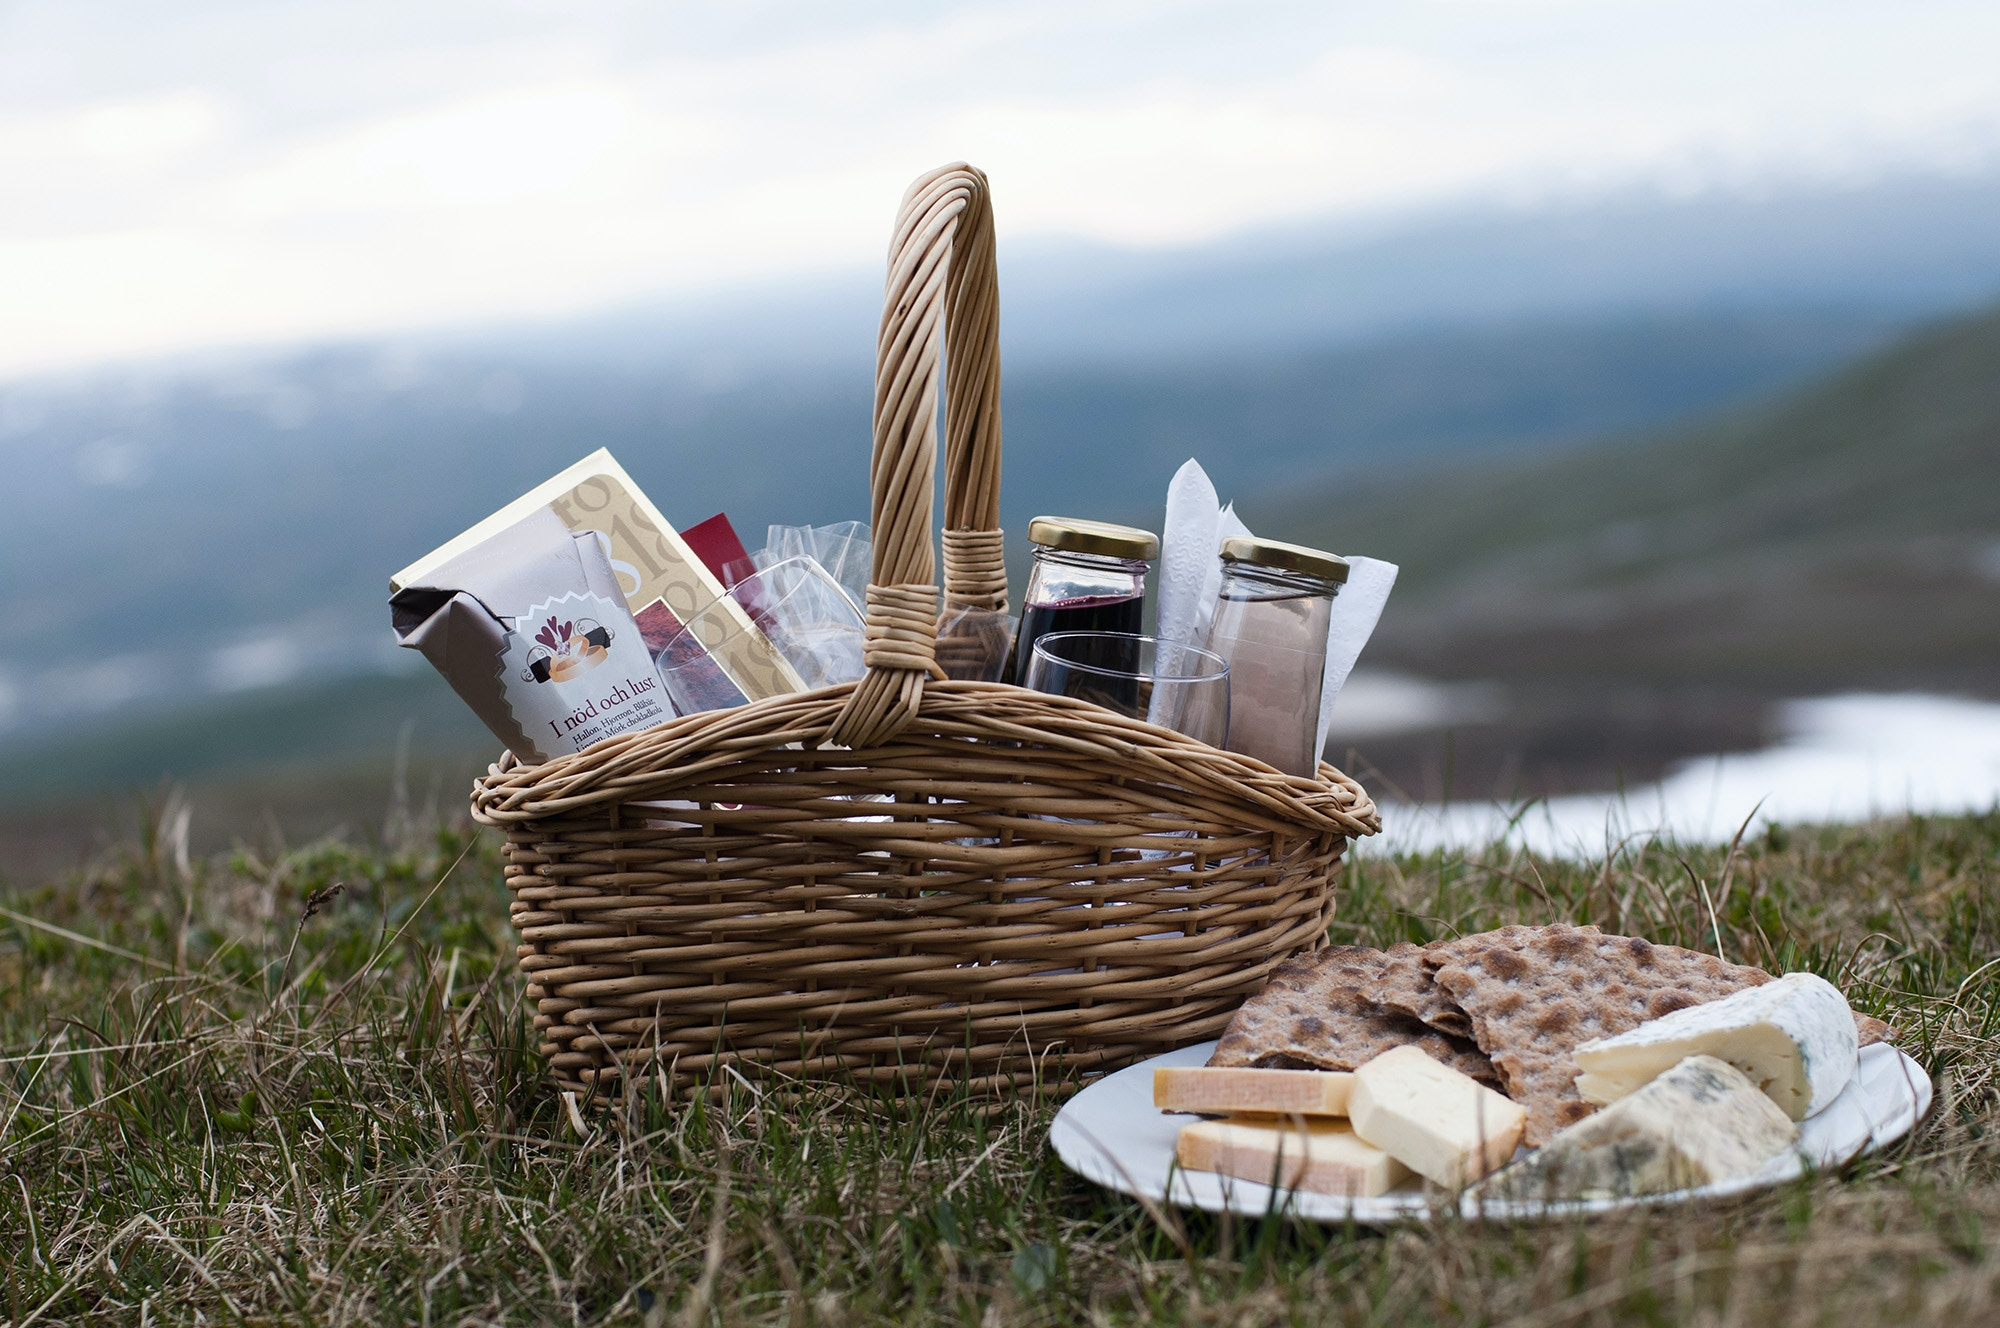 A hamper of food in an outdoor setting © Helena Wahlman / Getty Images